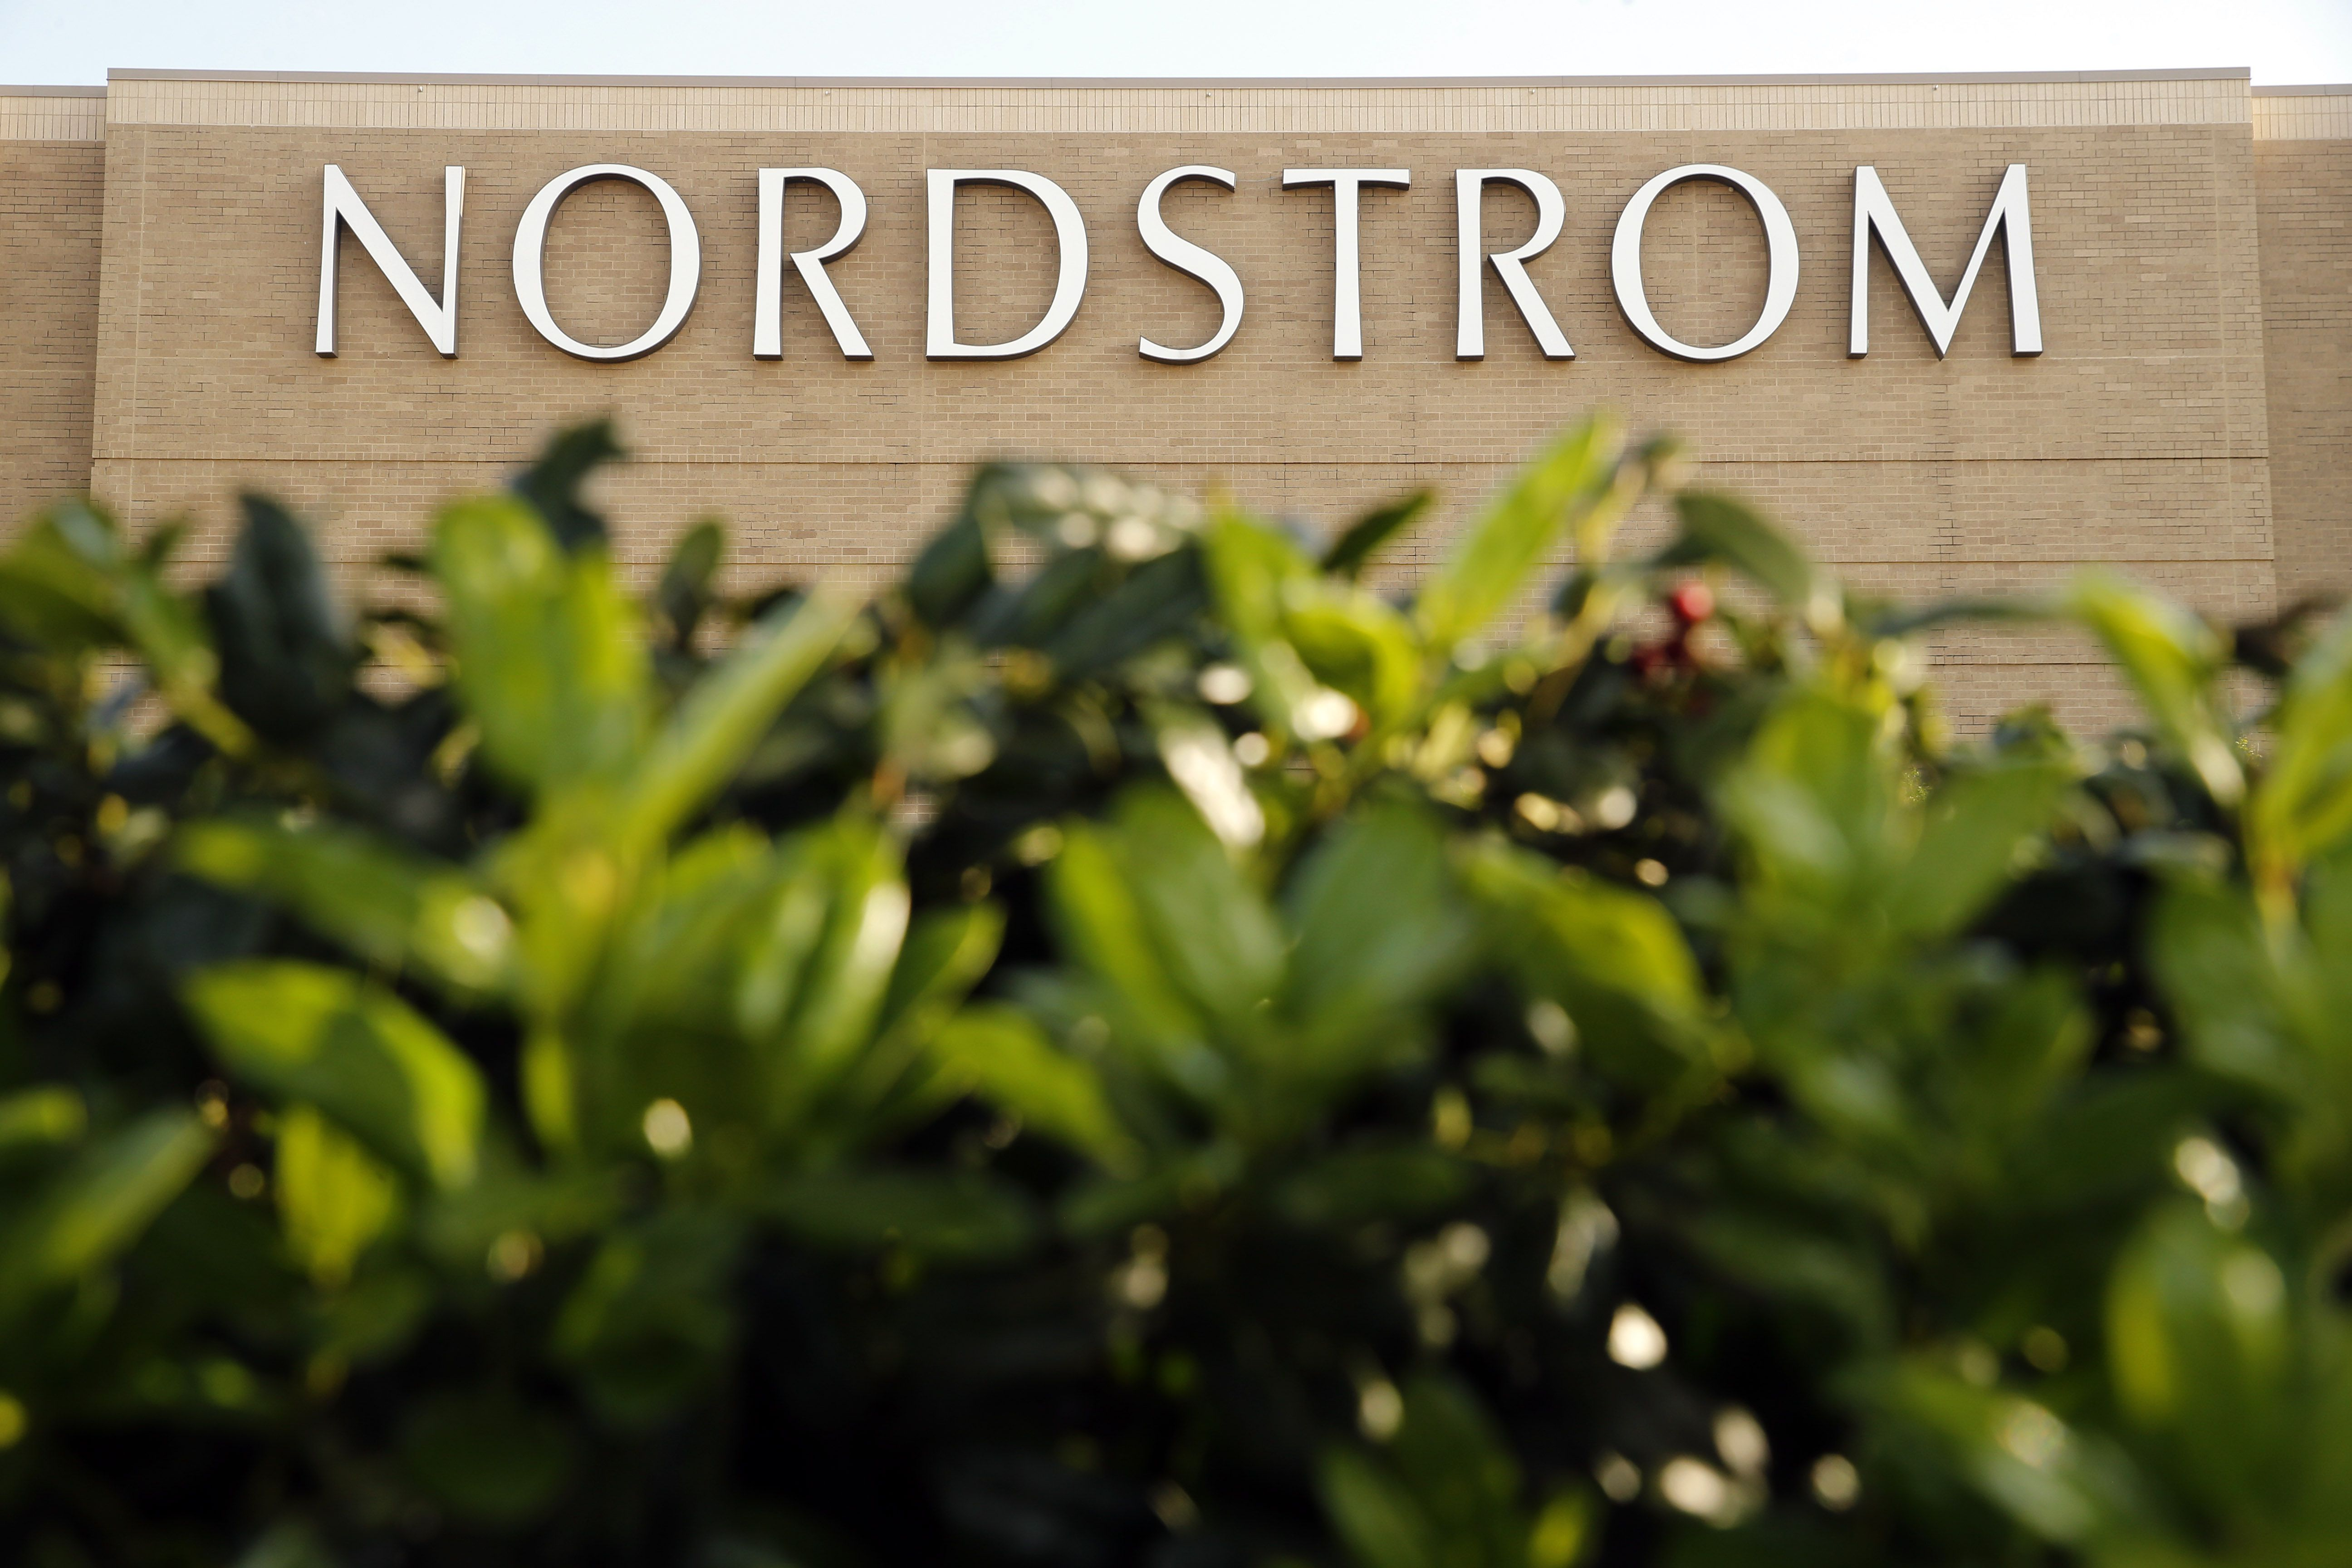 nordstrom s permanent store closings include at least one in texas